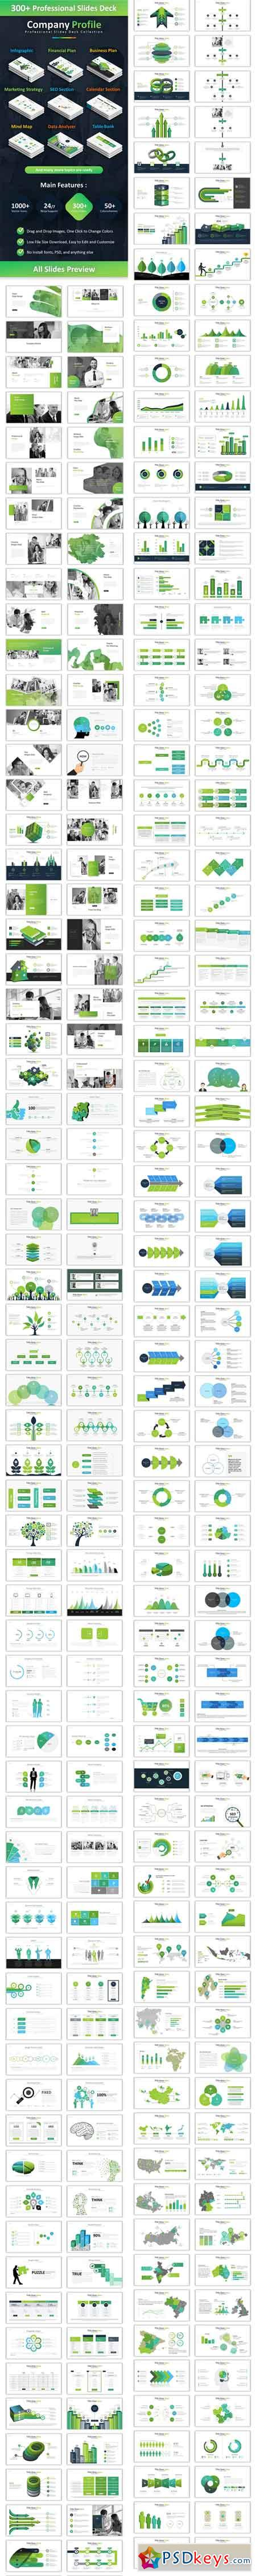 Company Profile Powerpoint 22198669